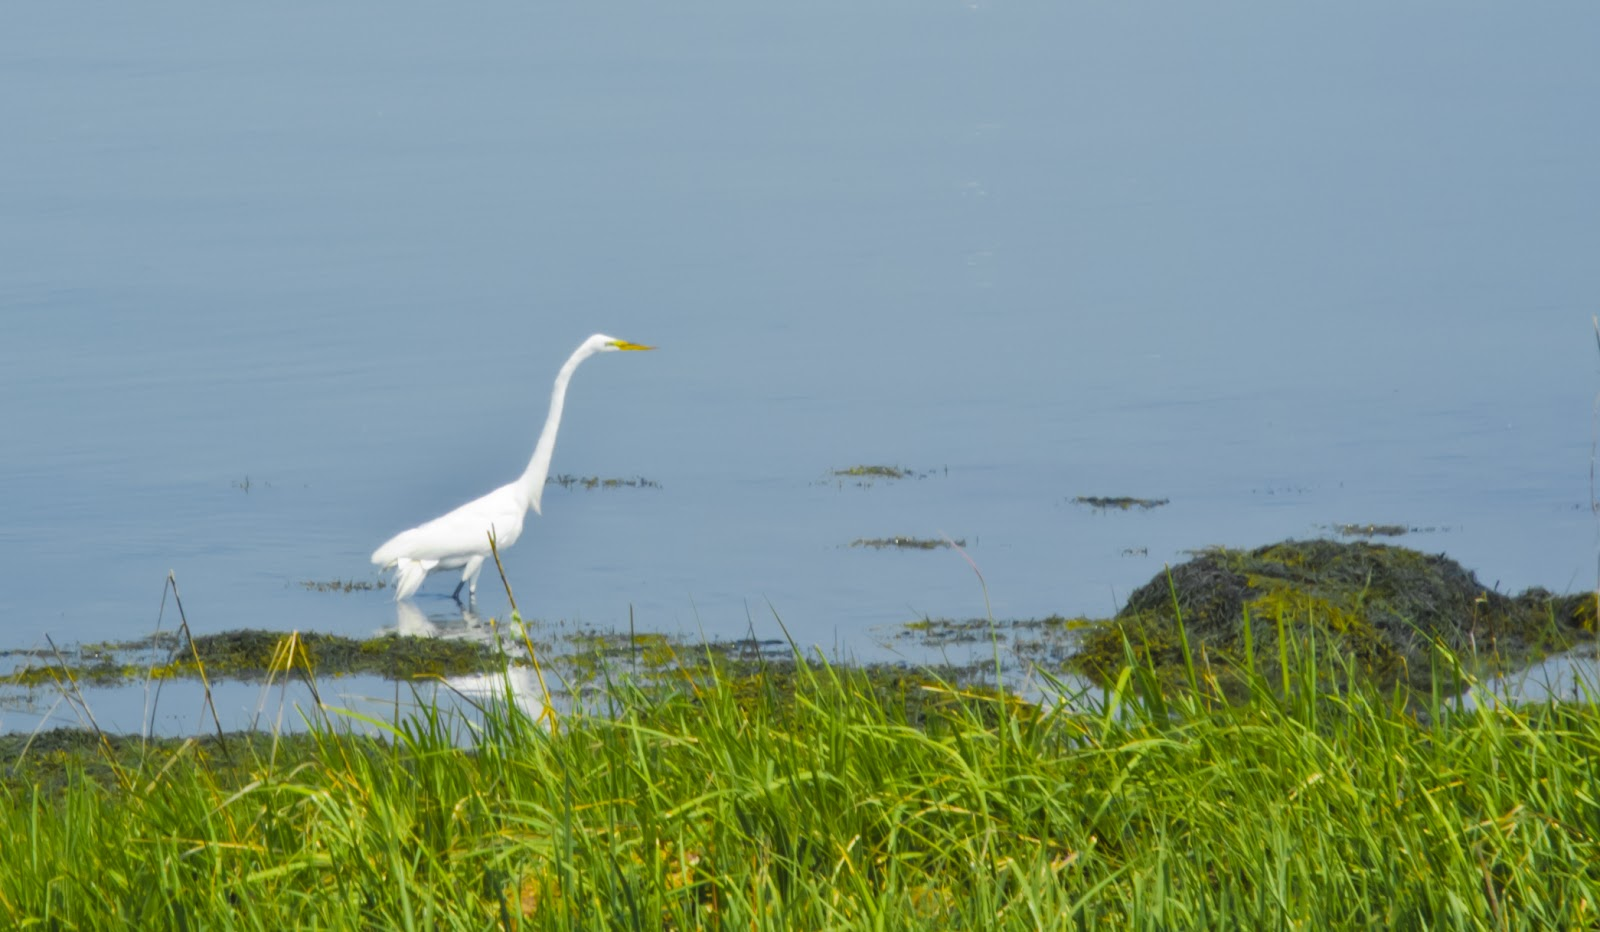 Connecticut explorer silver sands state park and charles island great egret at charles island milford ct nvjuhfo Image collections